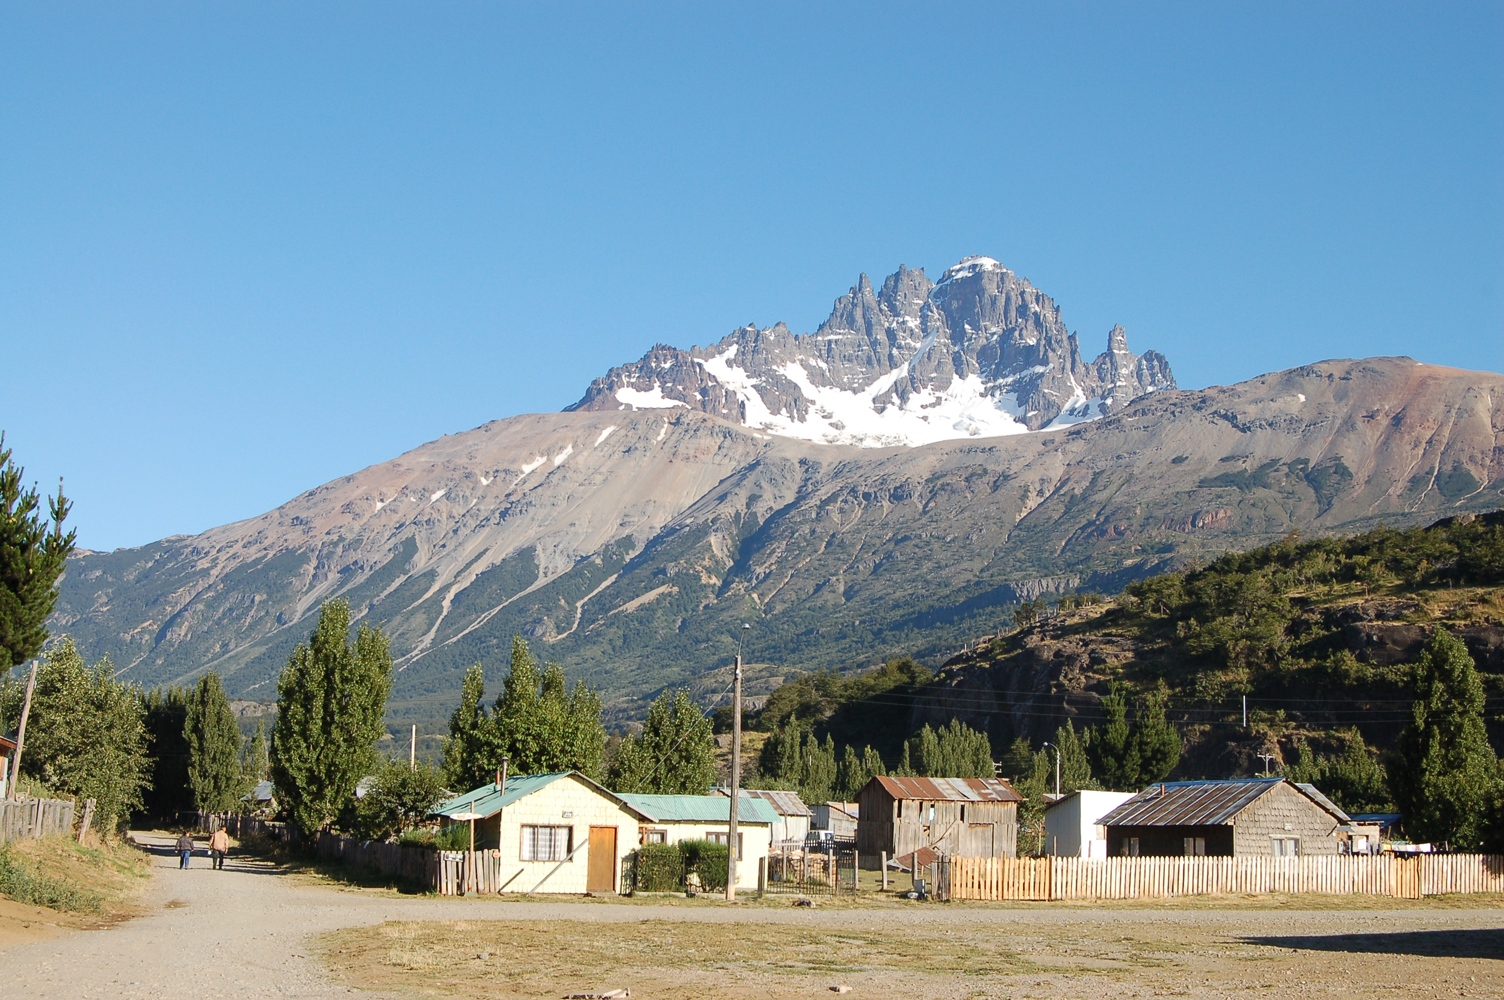 A classic Patagonian scene from Headwater's Chilean Adventure!